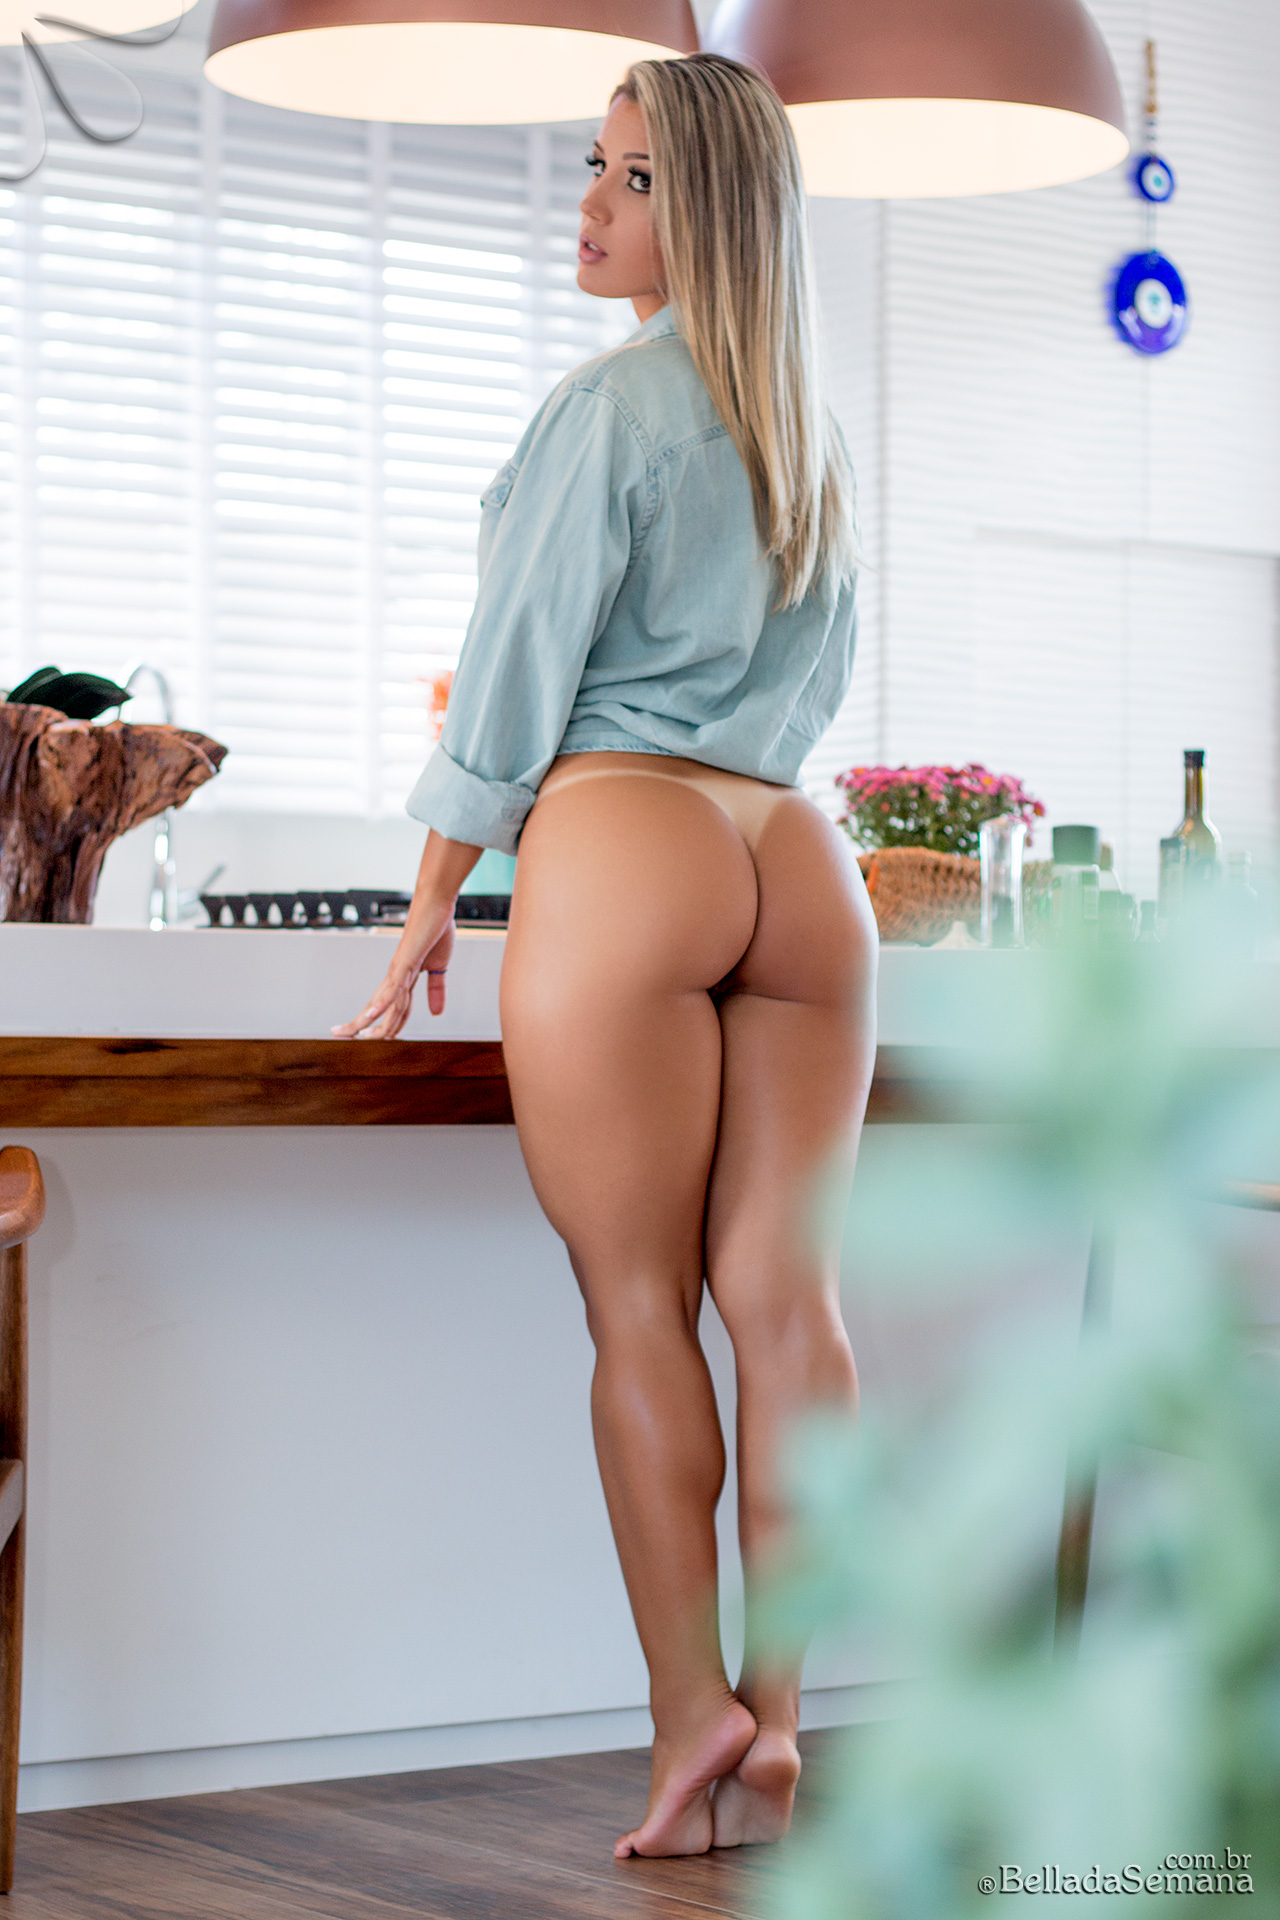 shaved head hottest sex videos search watch and rate